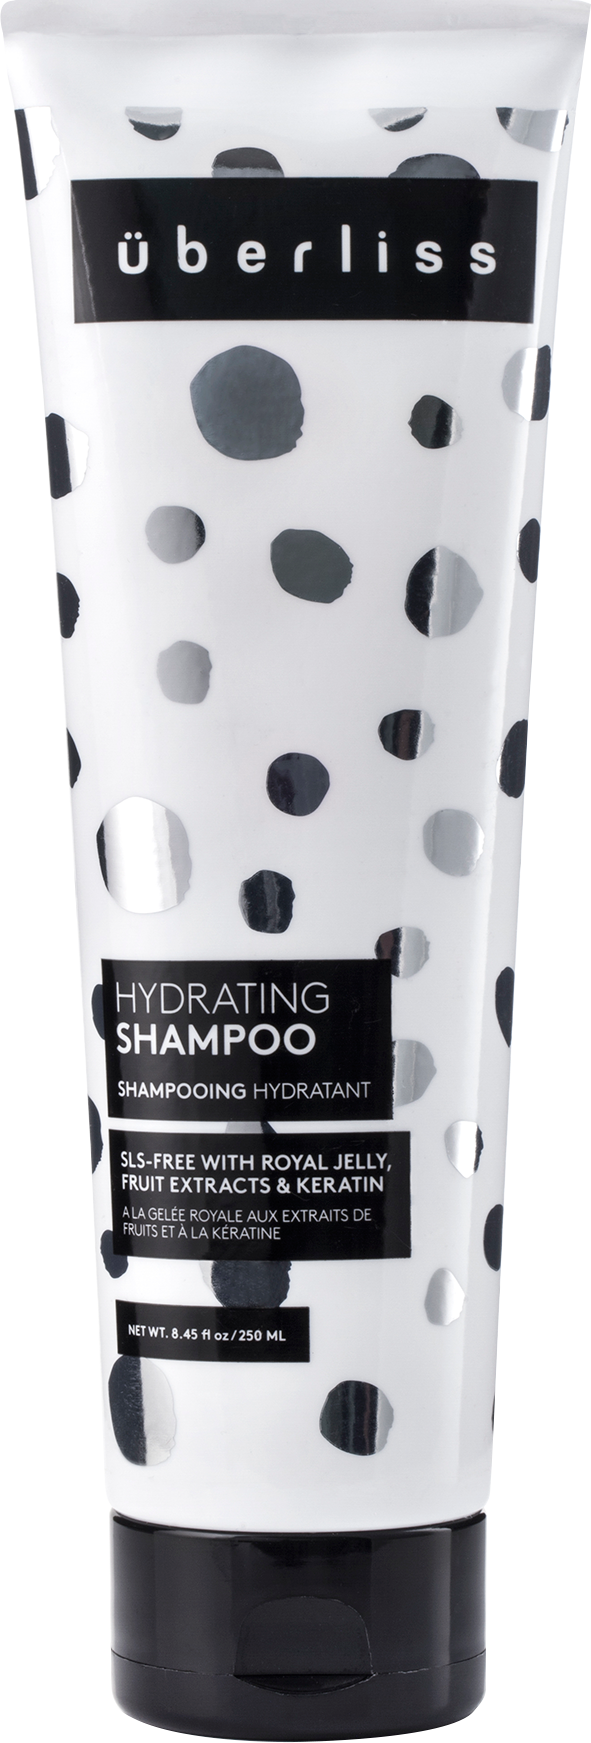 Uberliss-Hydrating-Shampoo-Packaging